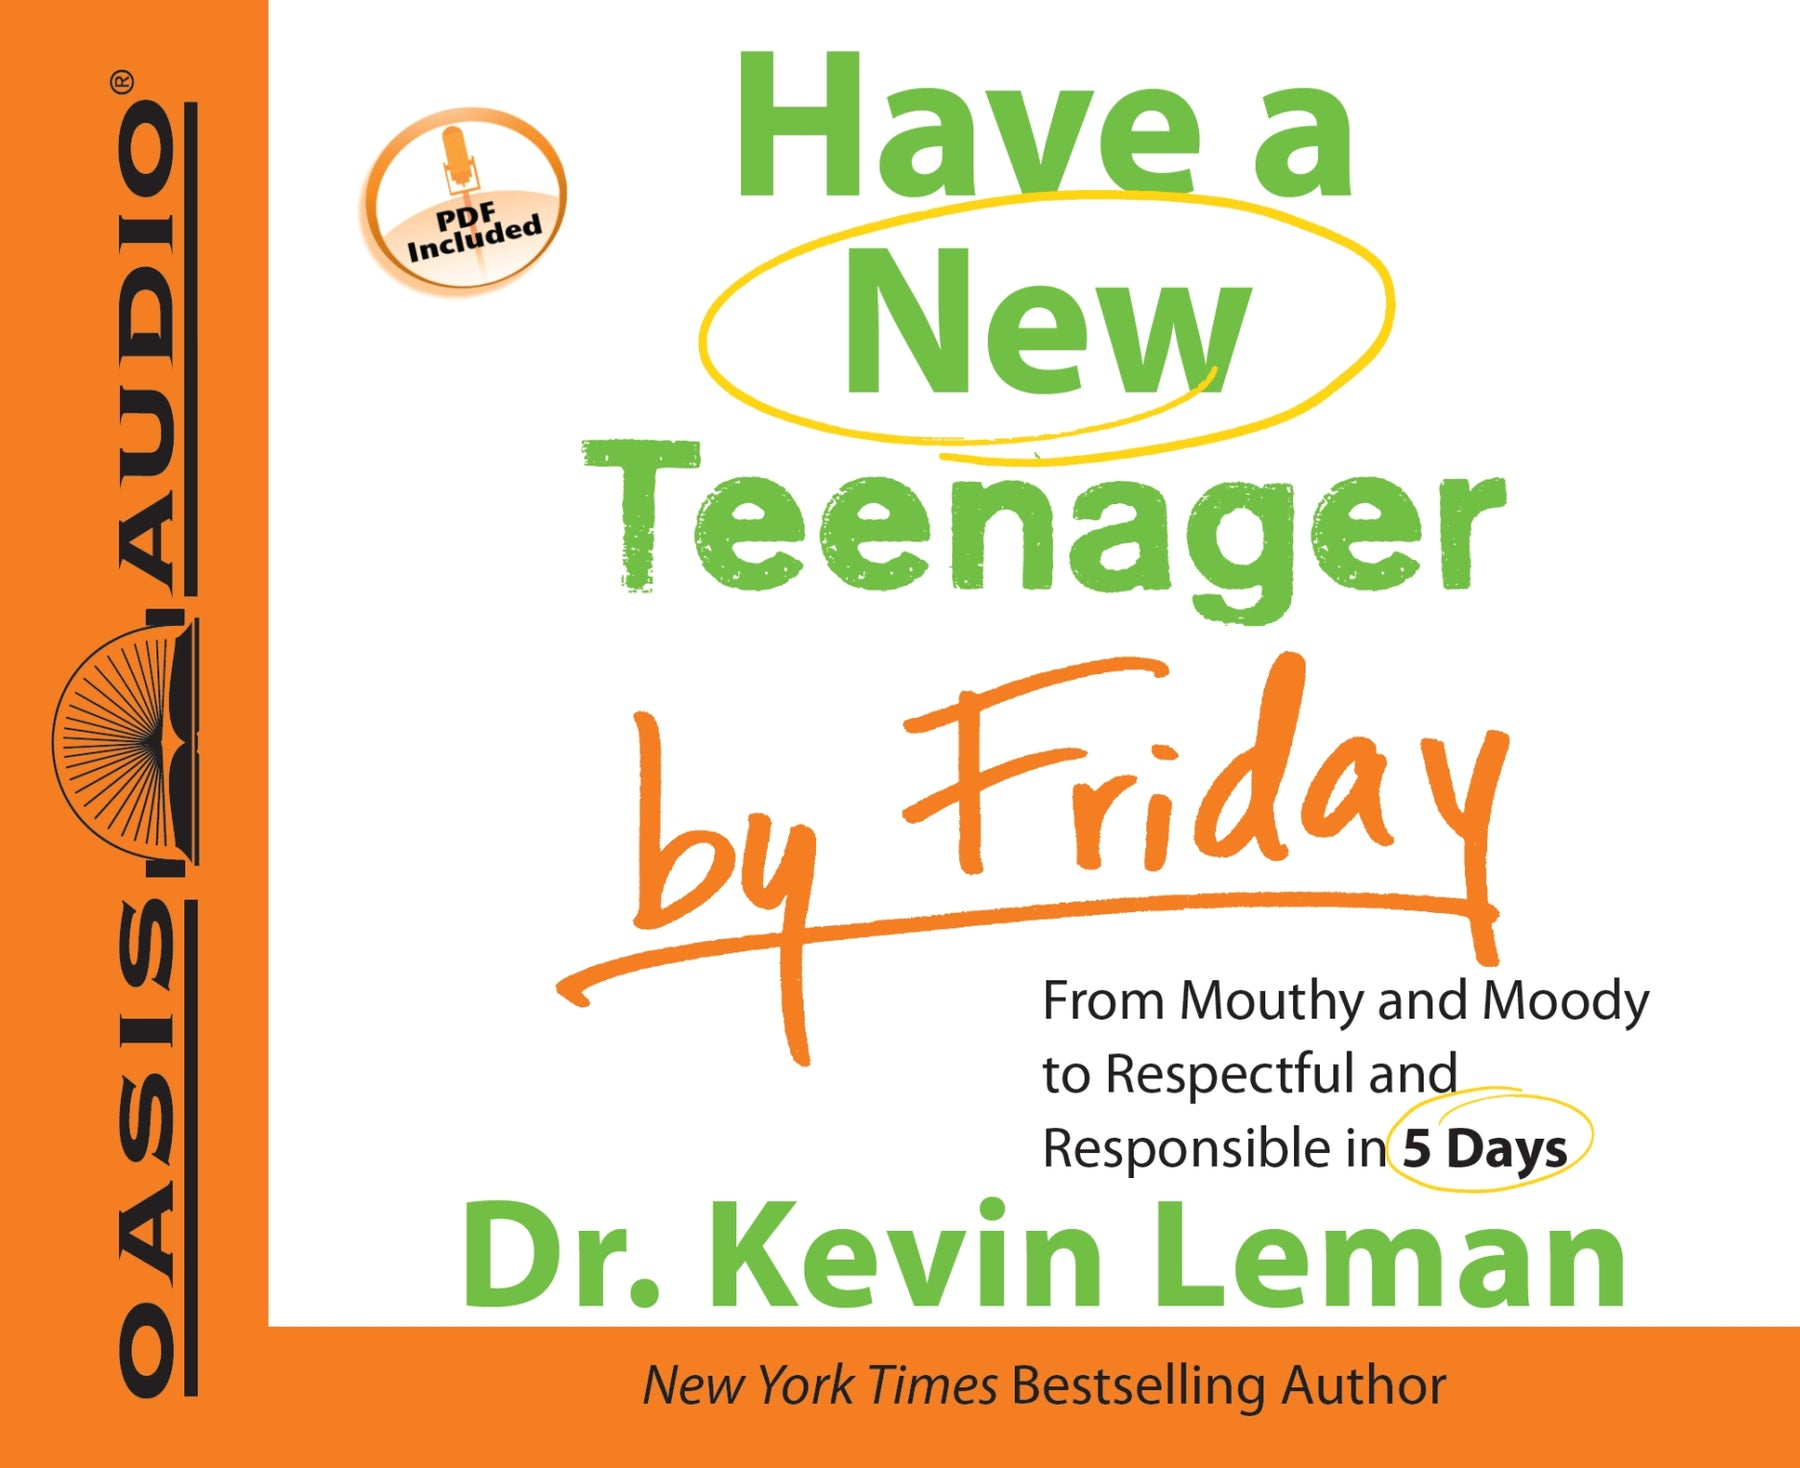 Have a New Teenager by Friday (Library Edition)